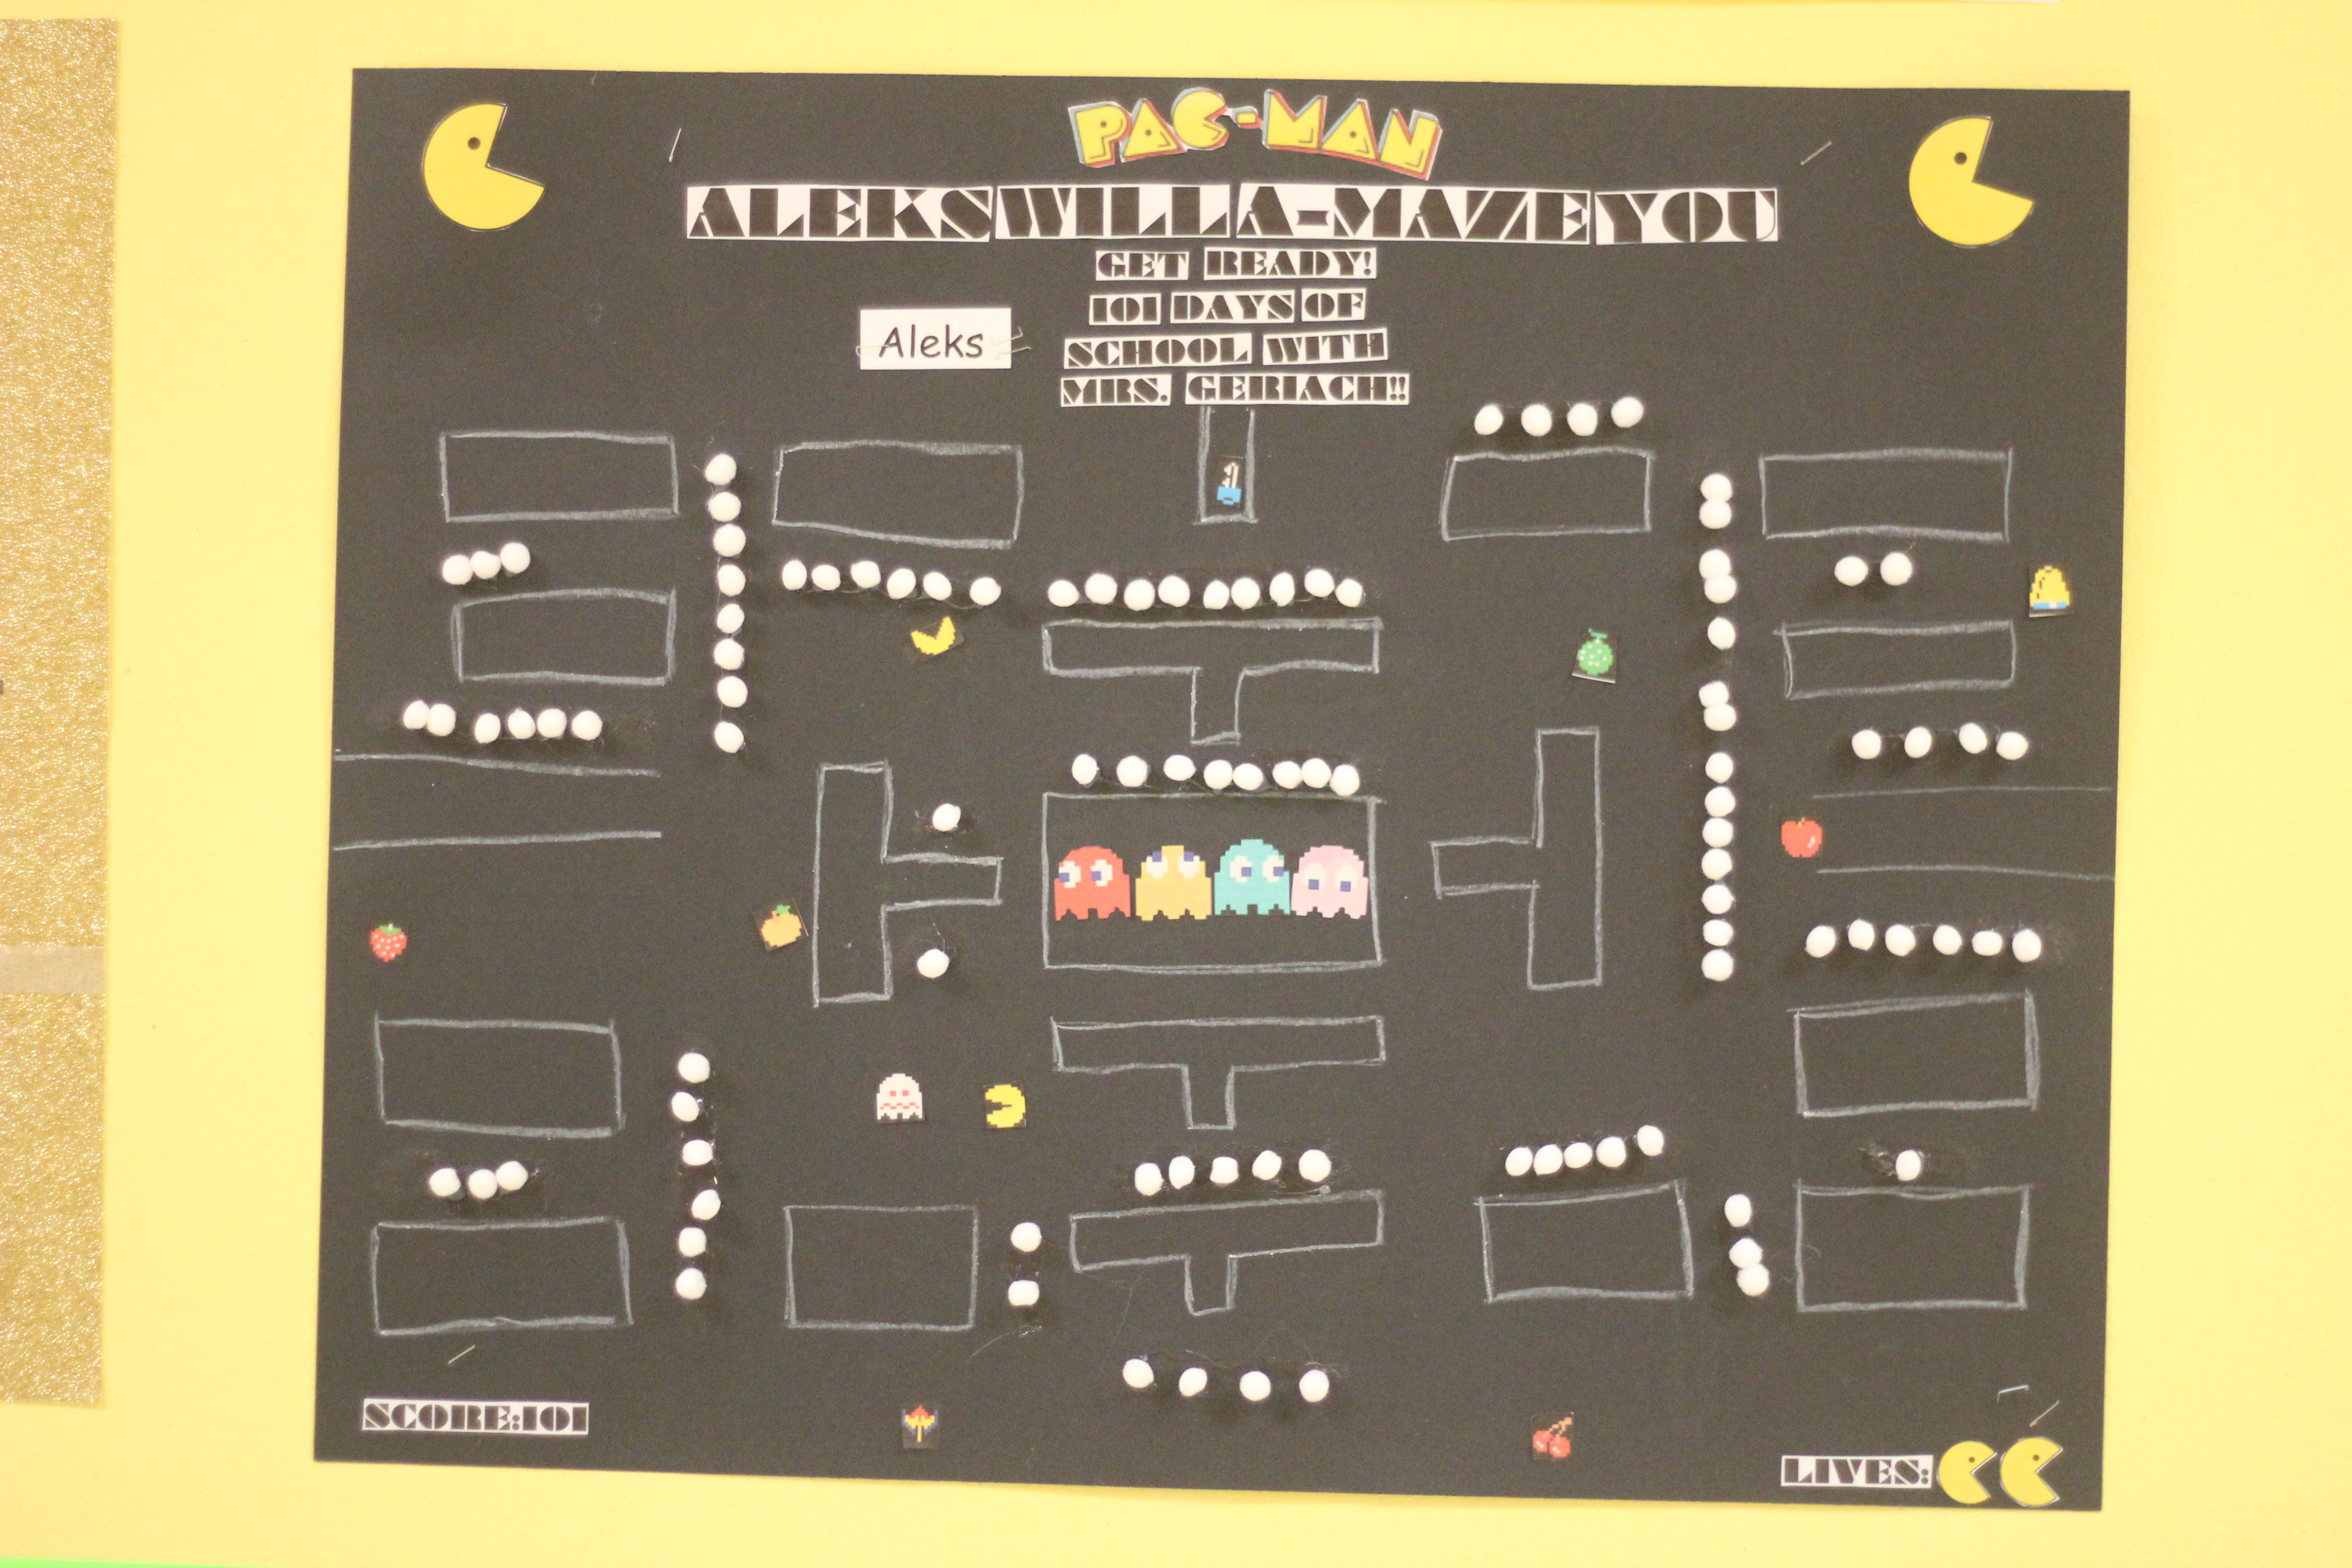 The poster includes 100 pac man stickers.